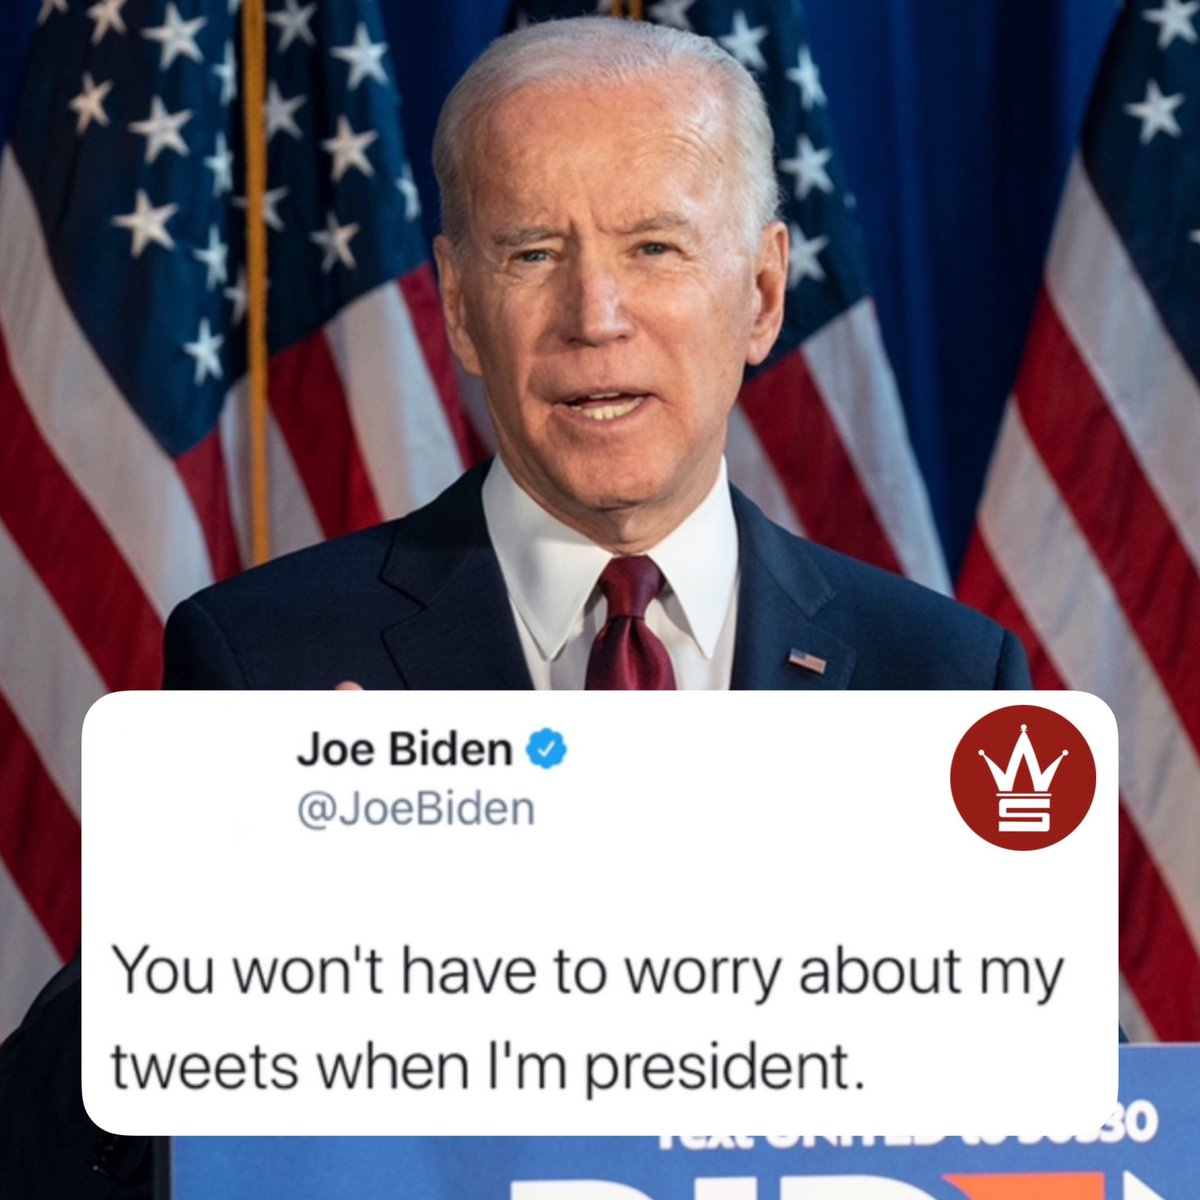 #JoeBiden had this to say earlier today...👀